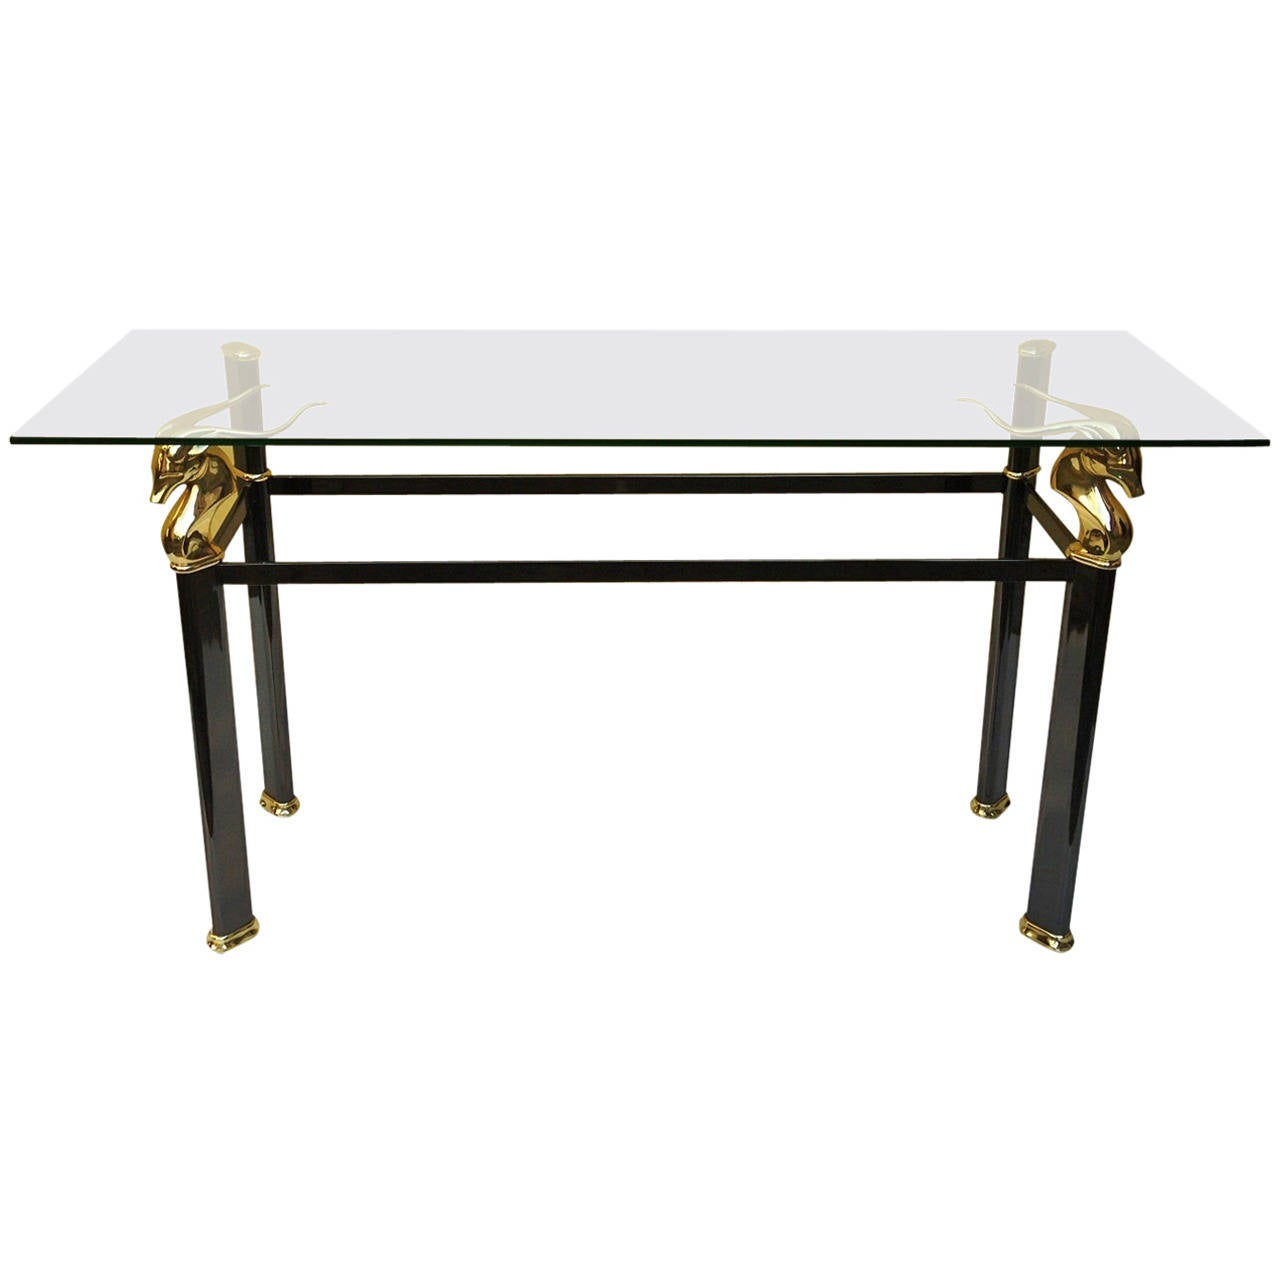 1990s console by versace collection at 1stdibs for Table versace